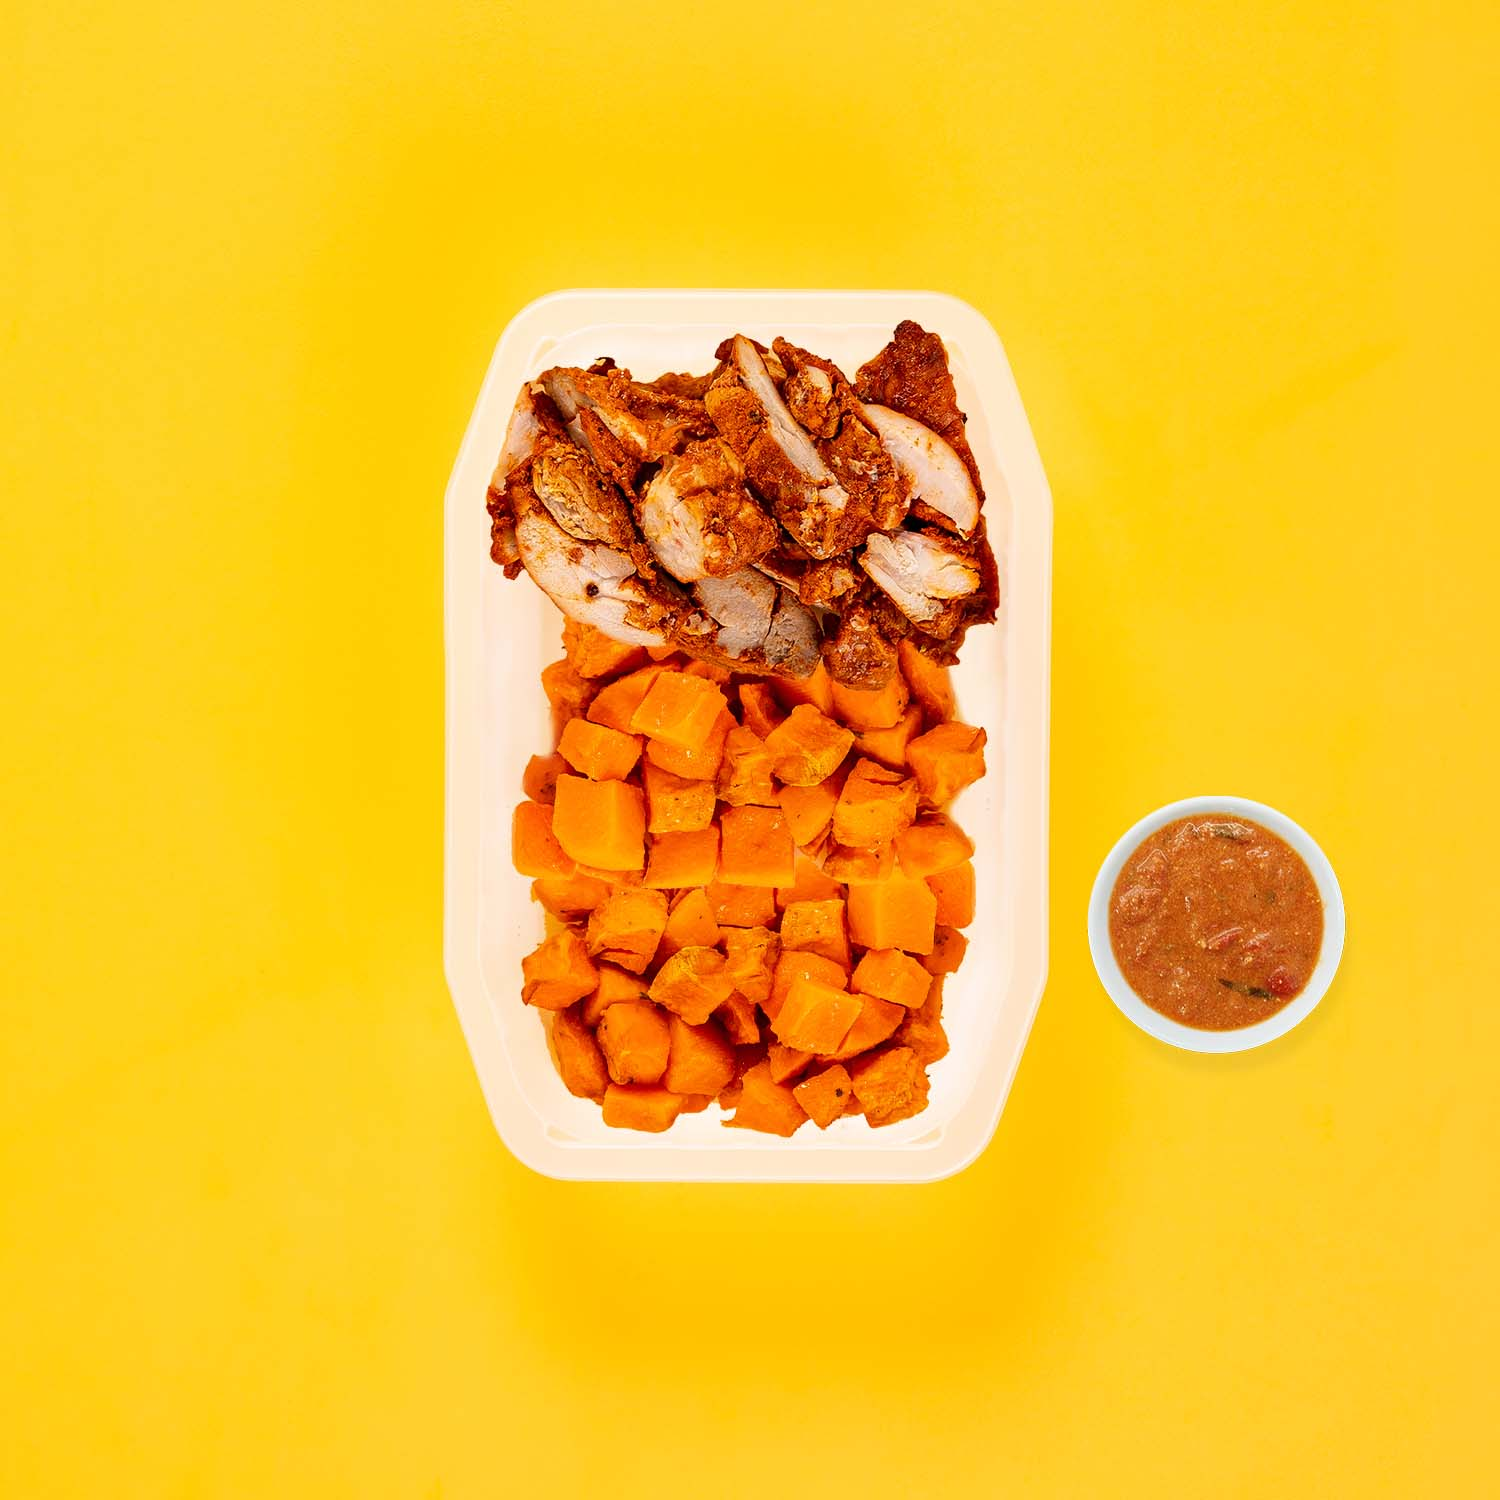 150g Chipotle Chicken Thigh 100g Rosemary Baked Sweet Potato 200g Rosemary Baked Sweet Potato Thai Red Curry